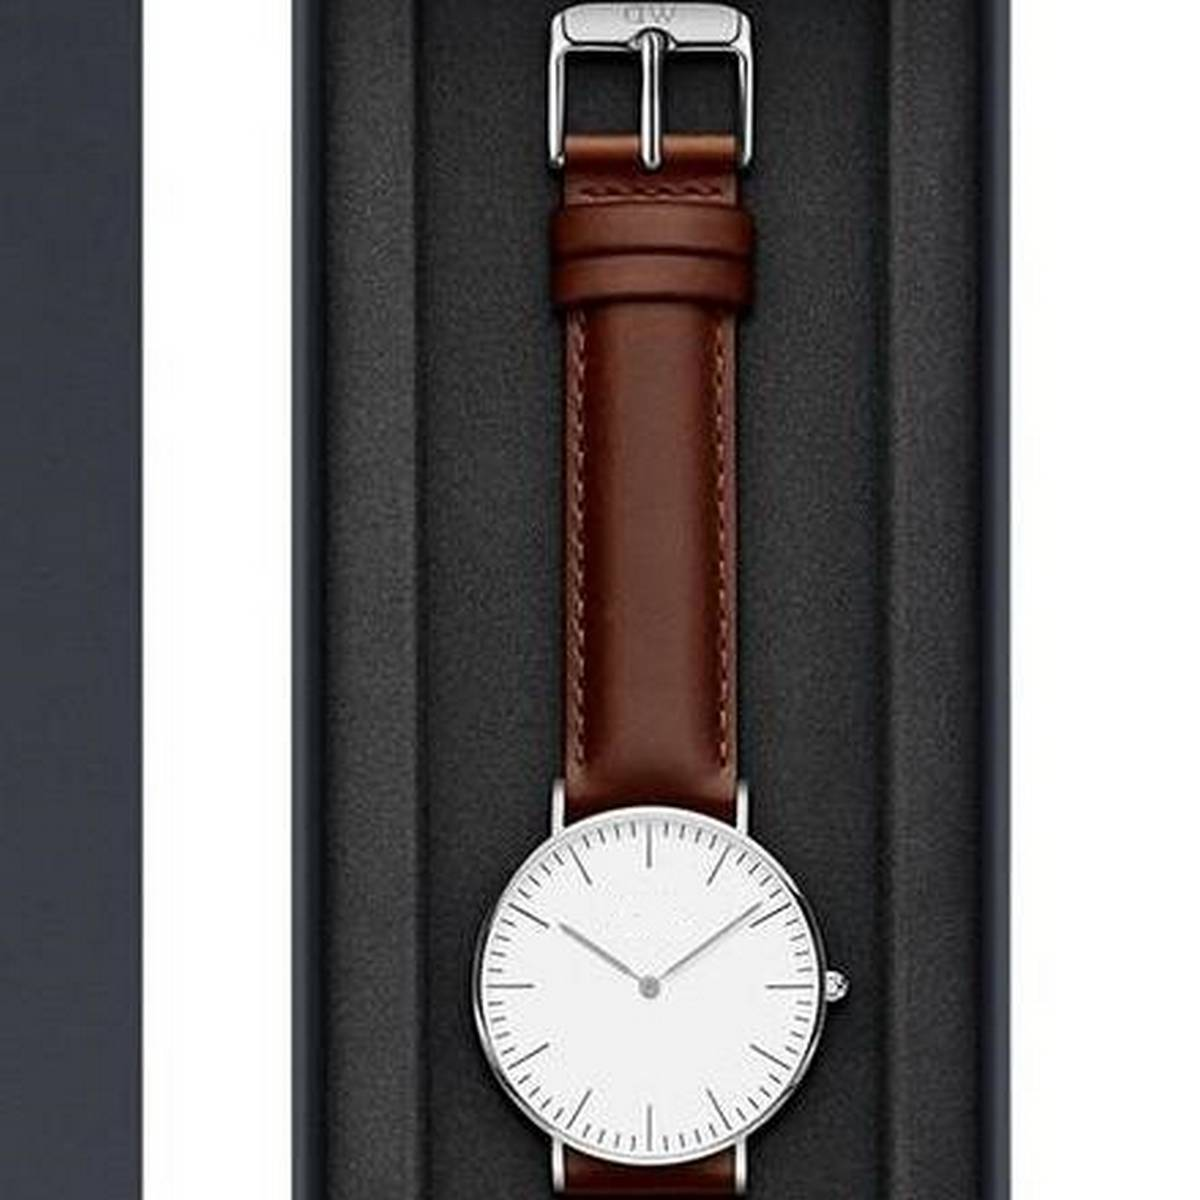 New Best Watch For Men In High Quality With Unique Design 2020 Luxury Watch For Boys with Free gift Box